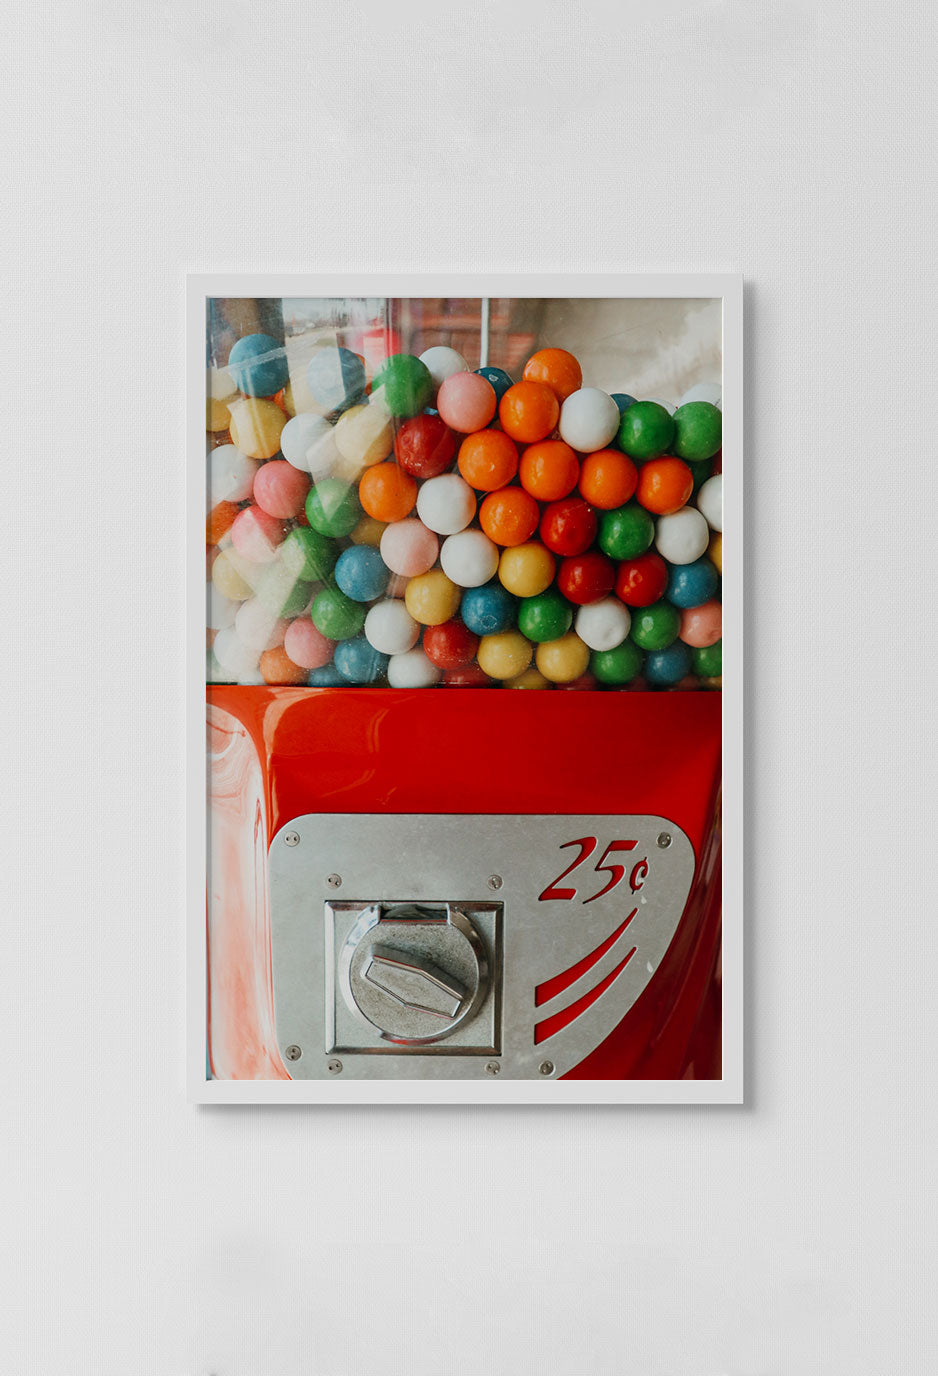 image of photo of red bubble gum machine with multi colored gum inside in white frame on white wall.